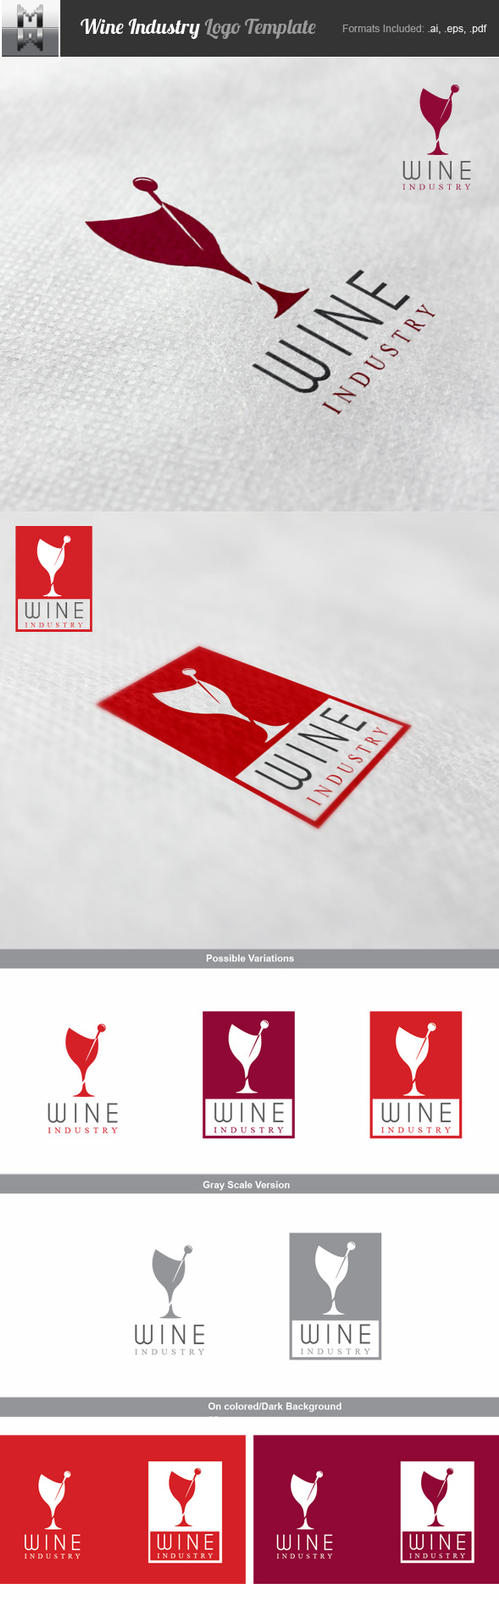 Wine Industry Logo Template by mindwilys